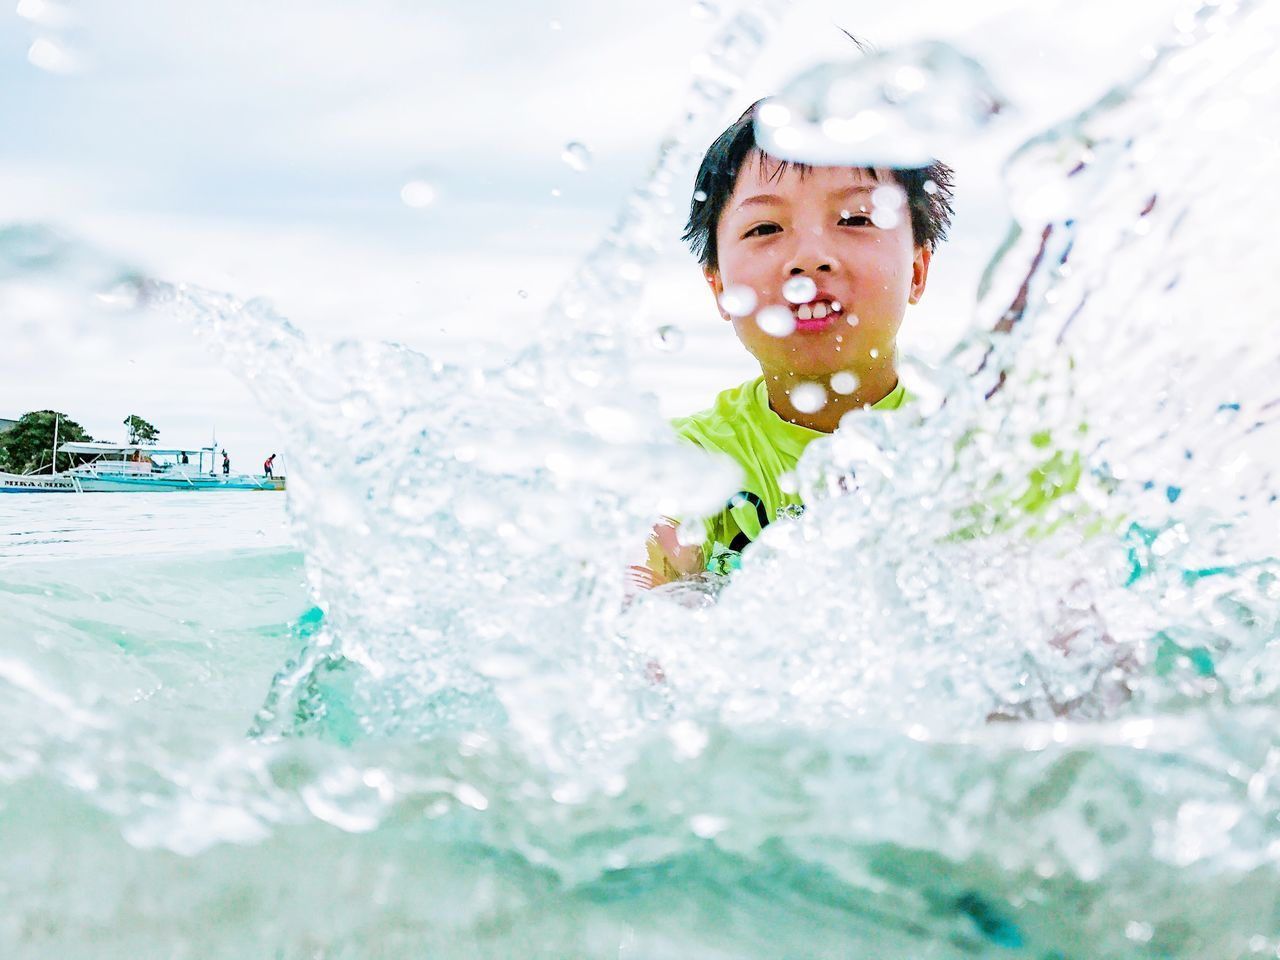 Summer fun splashing around on the beach. Childhood Child Children Only One Person Happiness Fun Swimming Pool Smiling Enjoyment One Boy Only Boy Kid Drops Playing Leisure Activity Portrait People Cheerful Outdoors Water Real People Splash Play Vacation